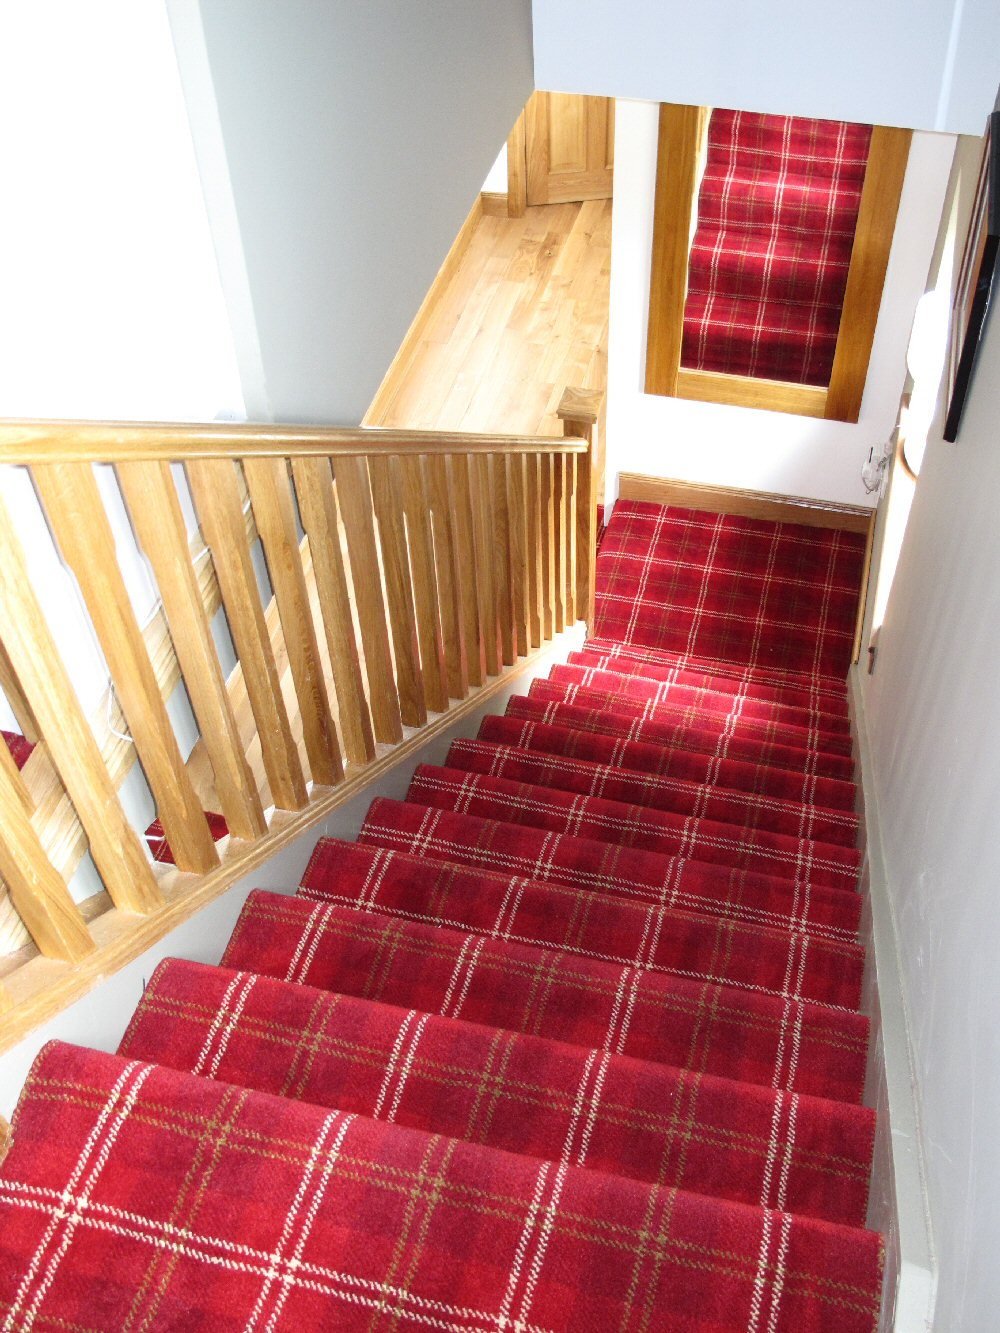 Photograph of domestic tartan carpet